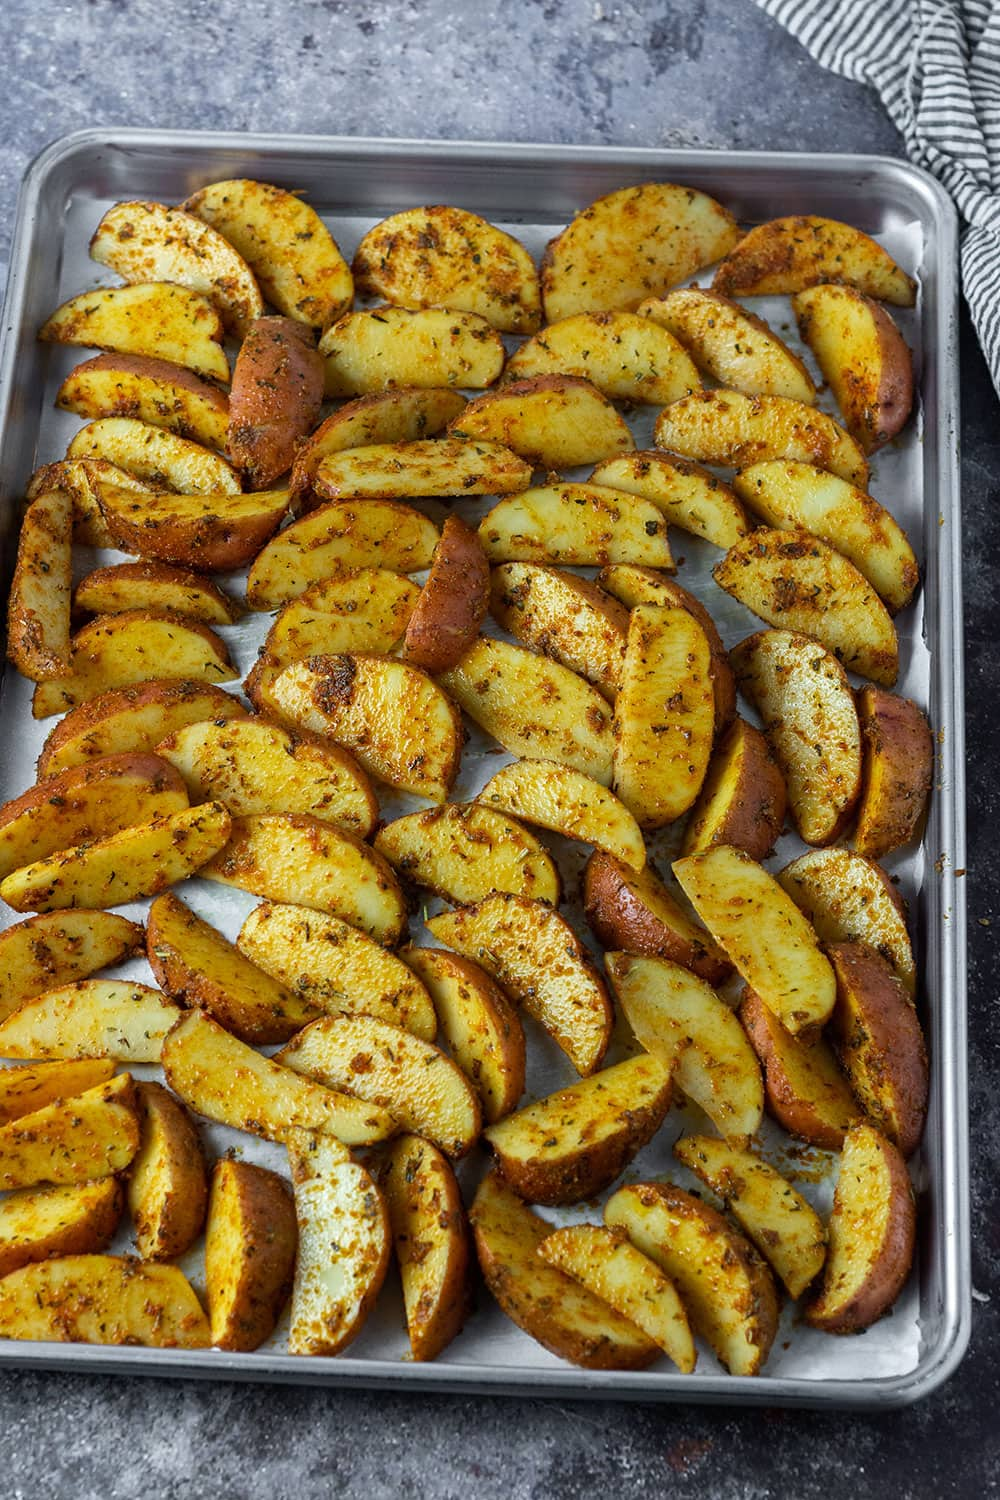 Seasoned cajun fries on sheet pan before being baked